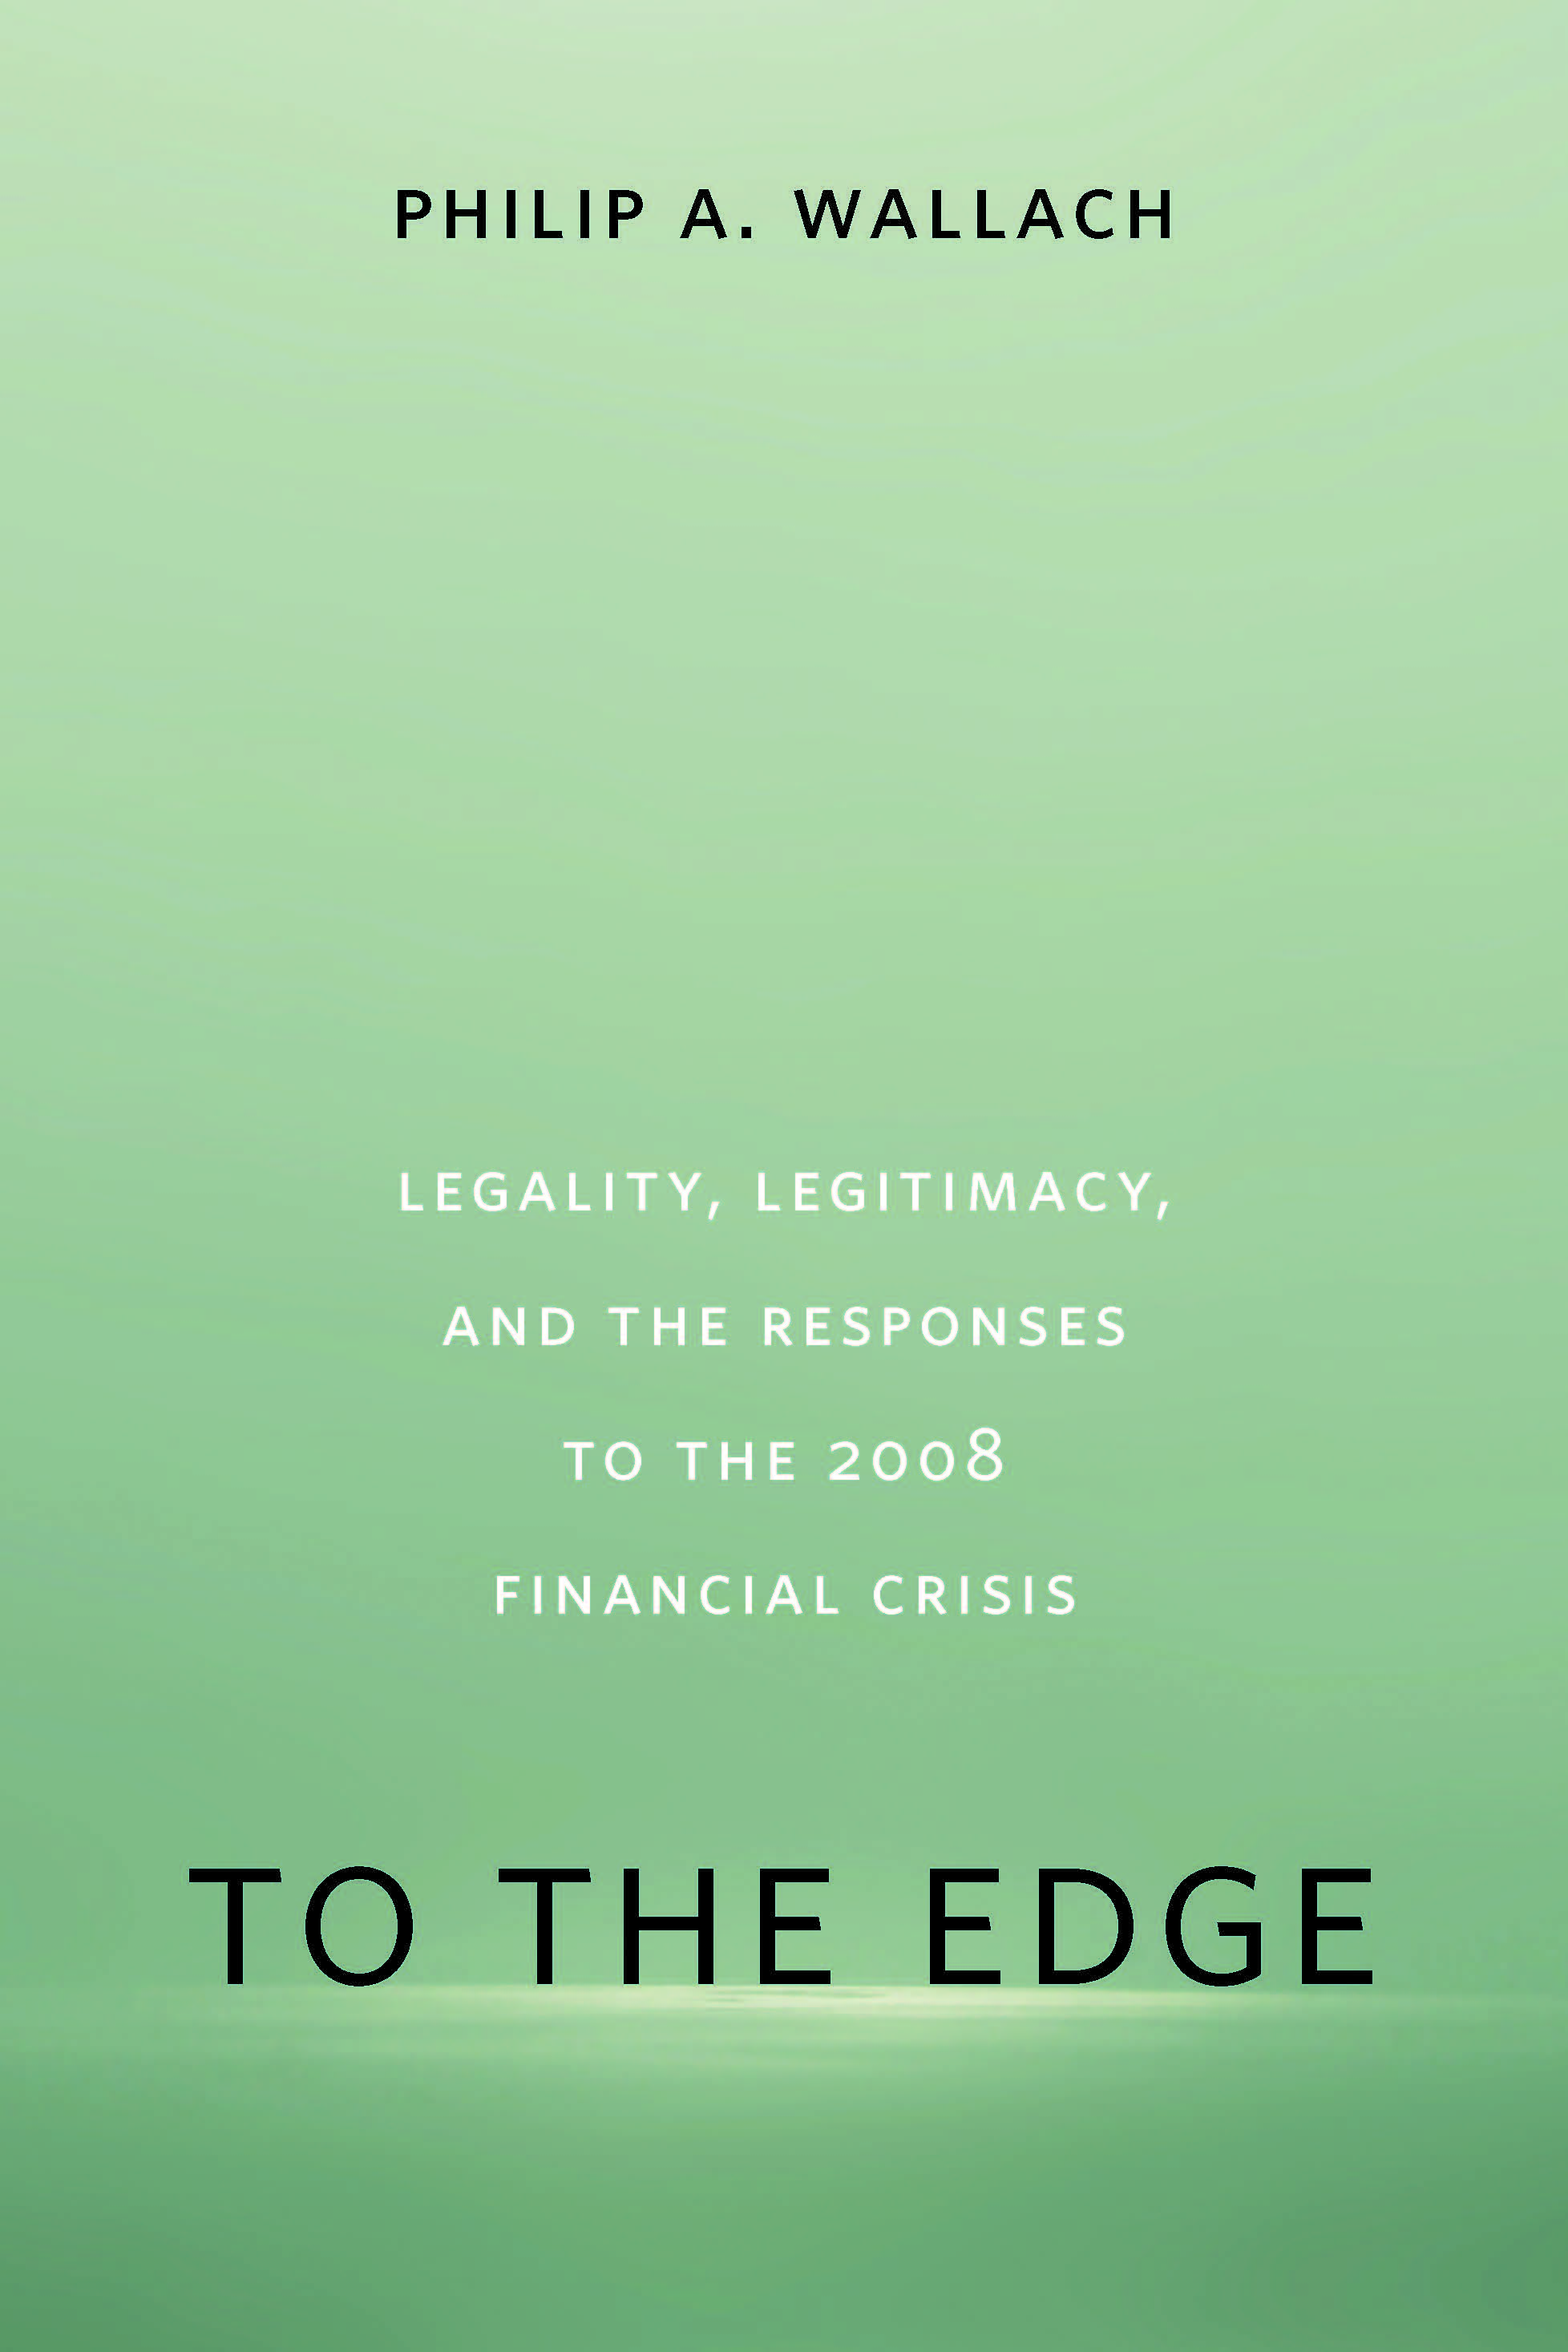 financial crisis essay central banking after the great recession  central banking after the great recession institution to the edge